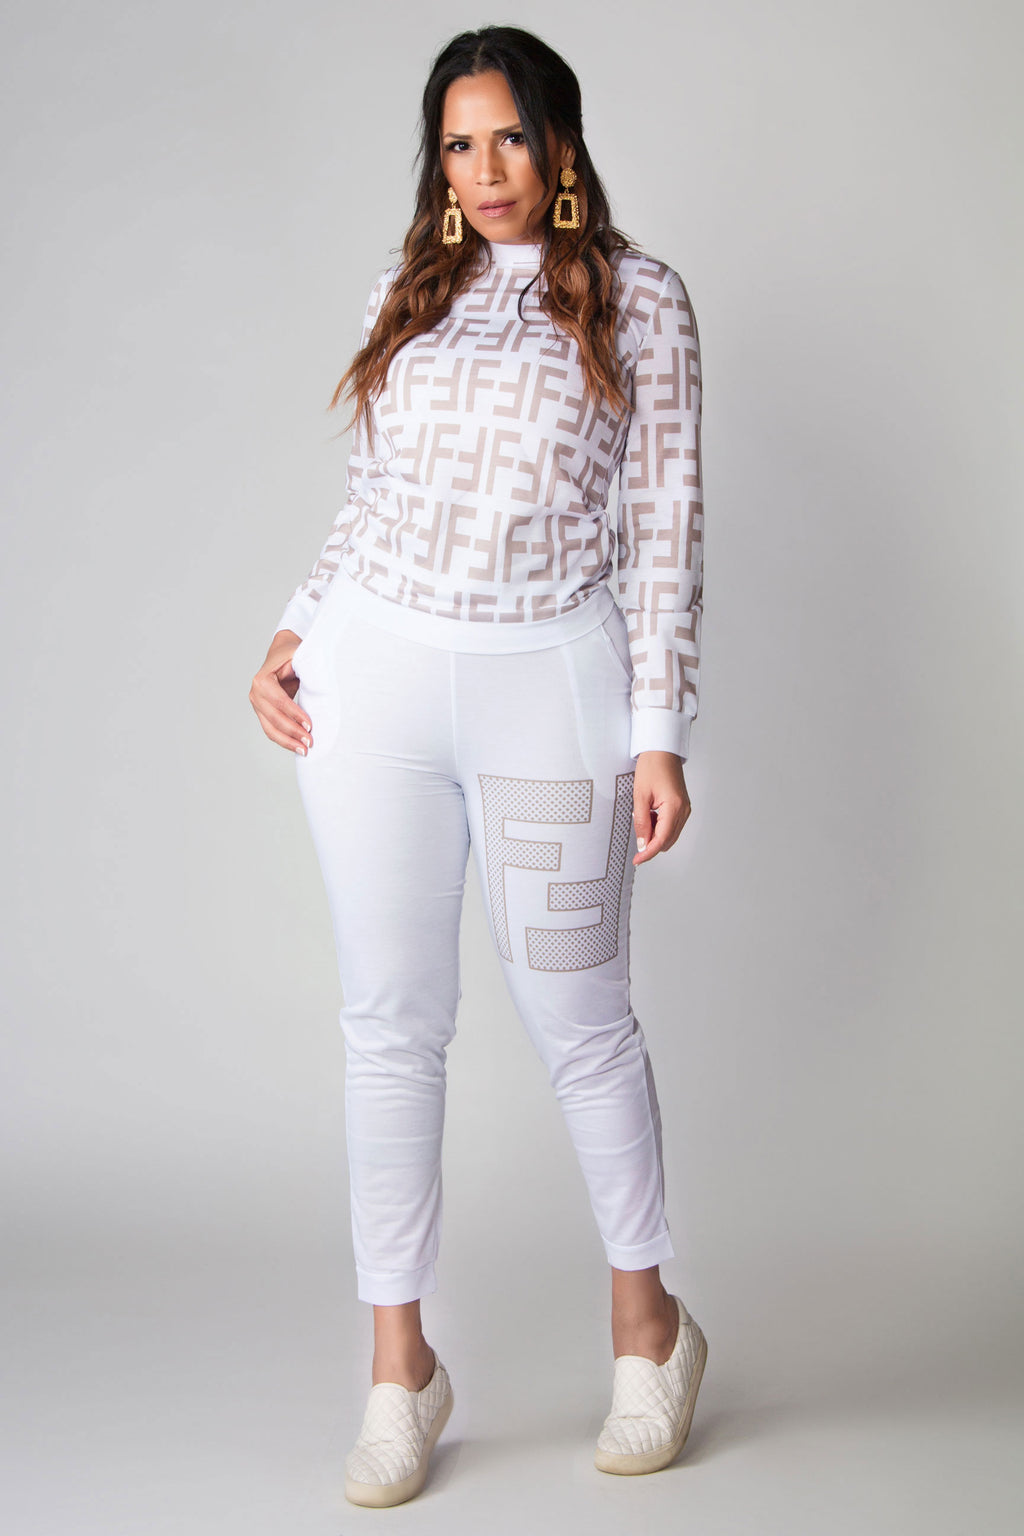 Frieda Long Sleeves Two Piece Pants Lounge Set